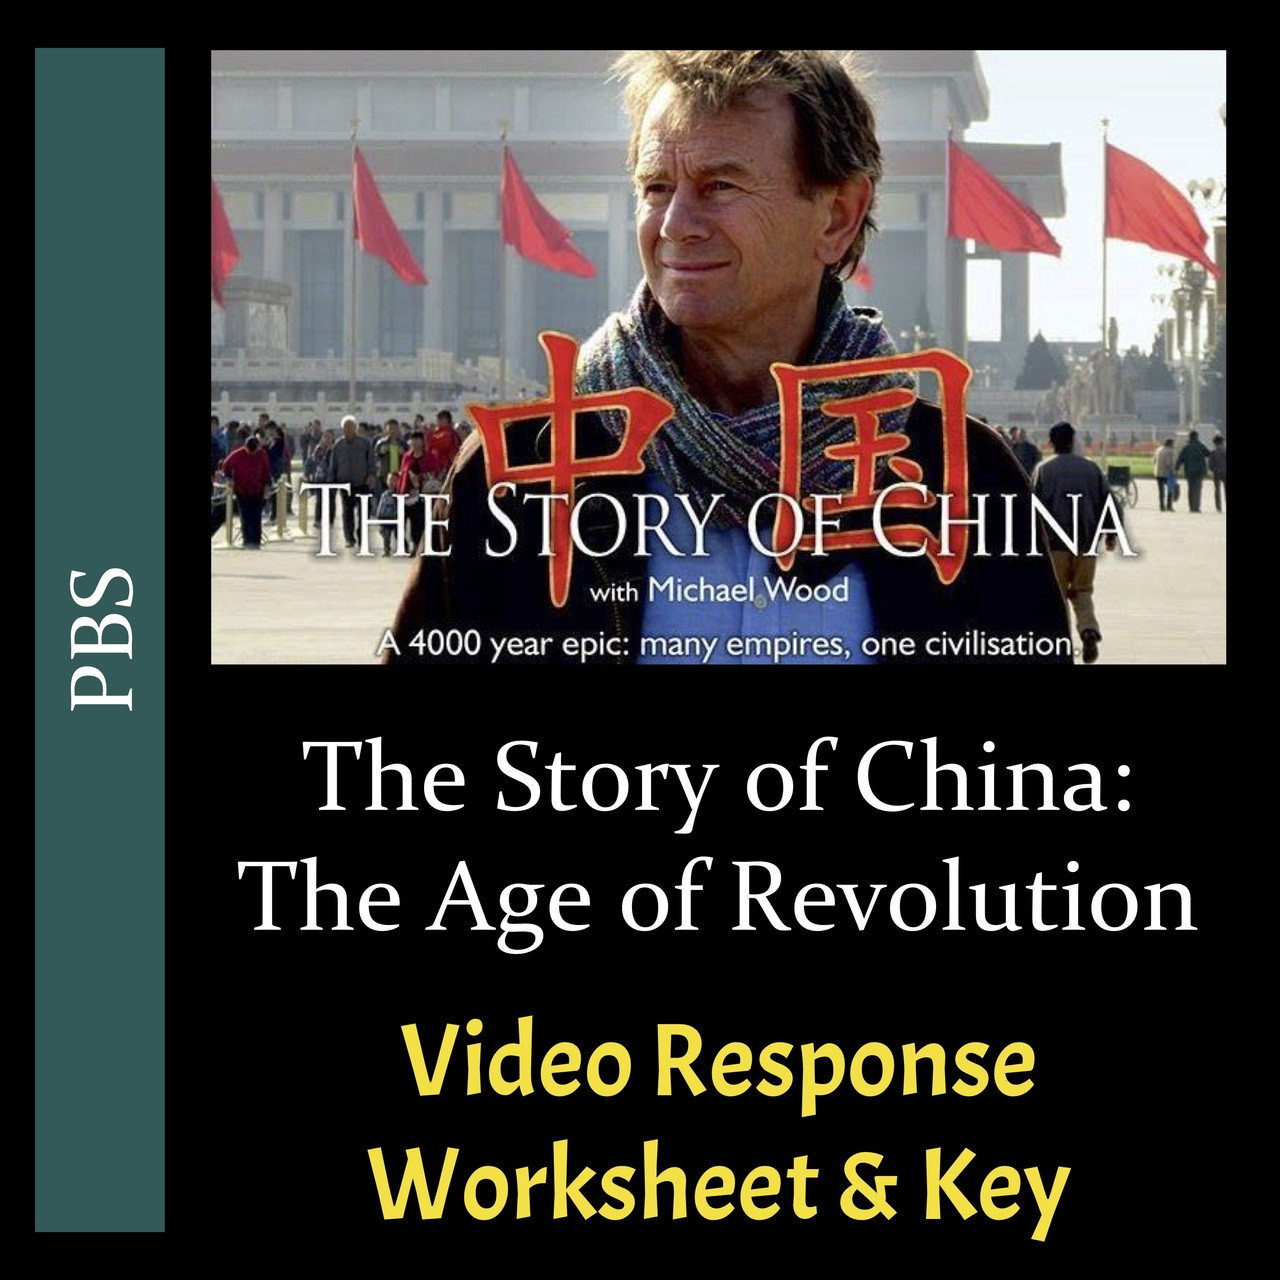 hight resolution of The Story of China - Episode 6: The Age of Revolution - Video Response  Worksheet \u0026 Key (Editable) - Amped Up Learning